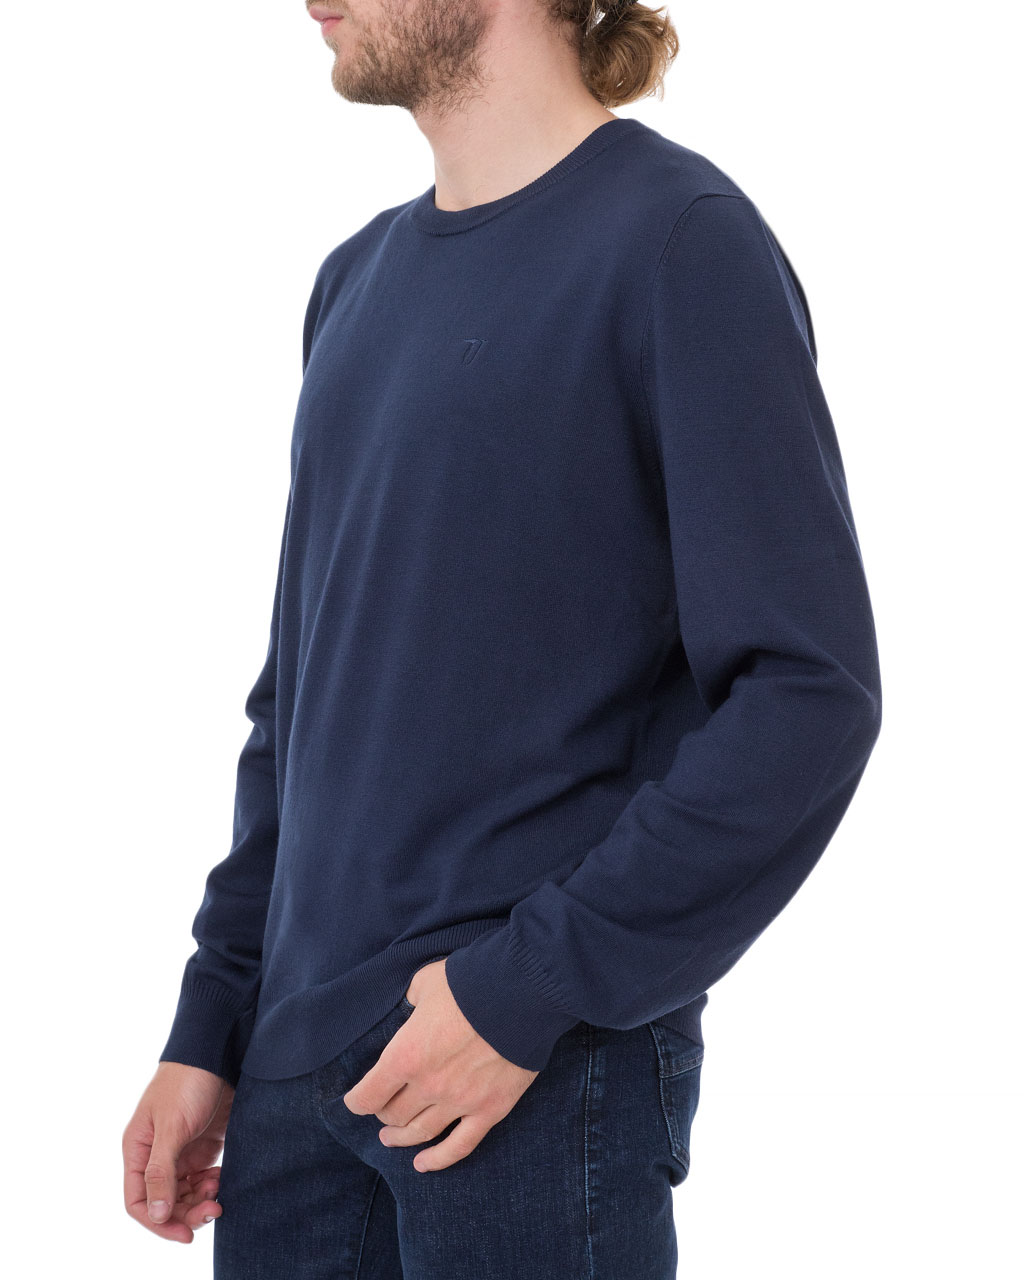 Men's jumper 52M00231-OF000433-U290/19-20 (4)